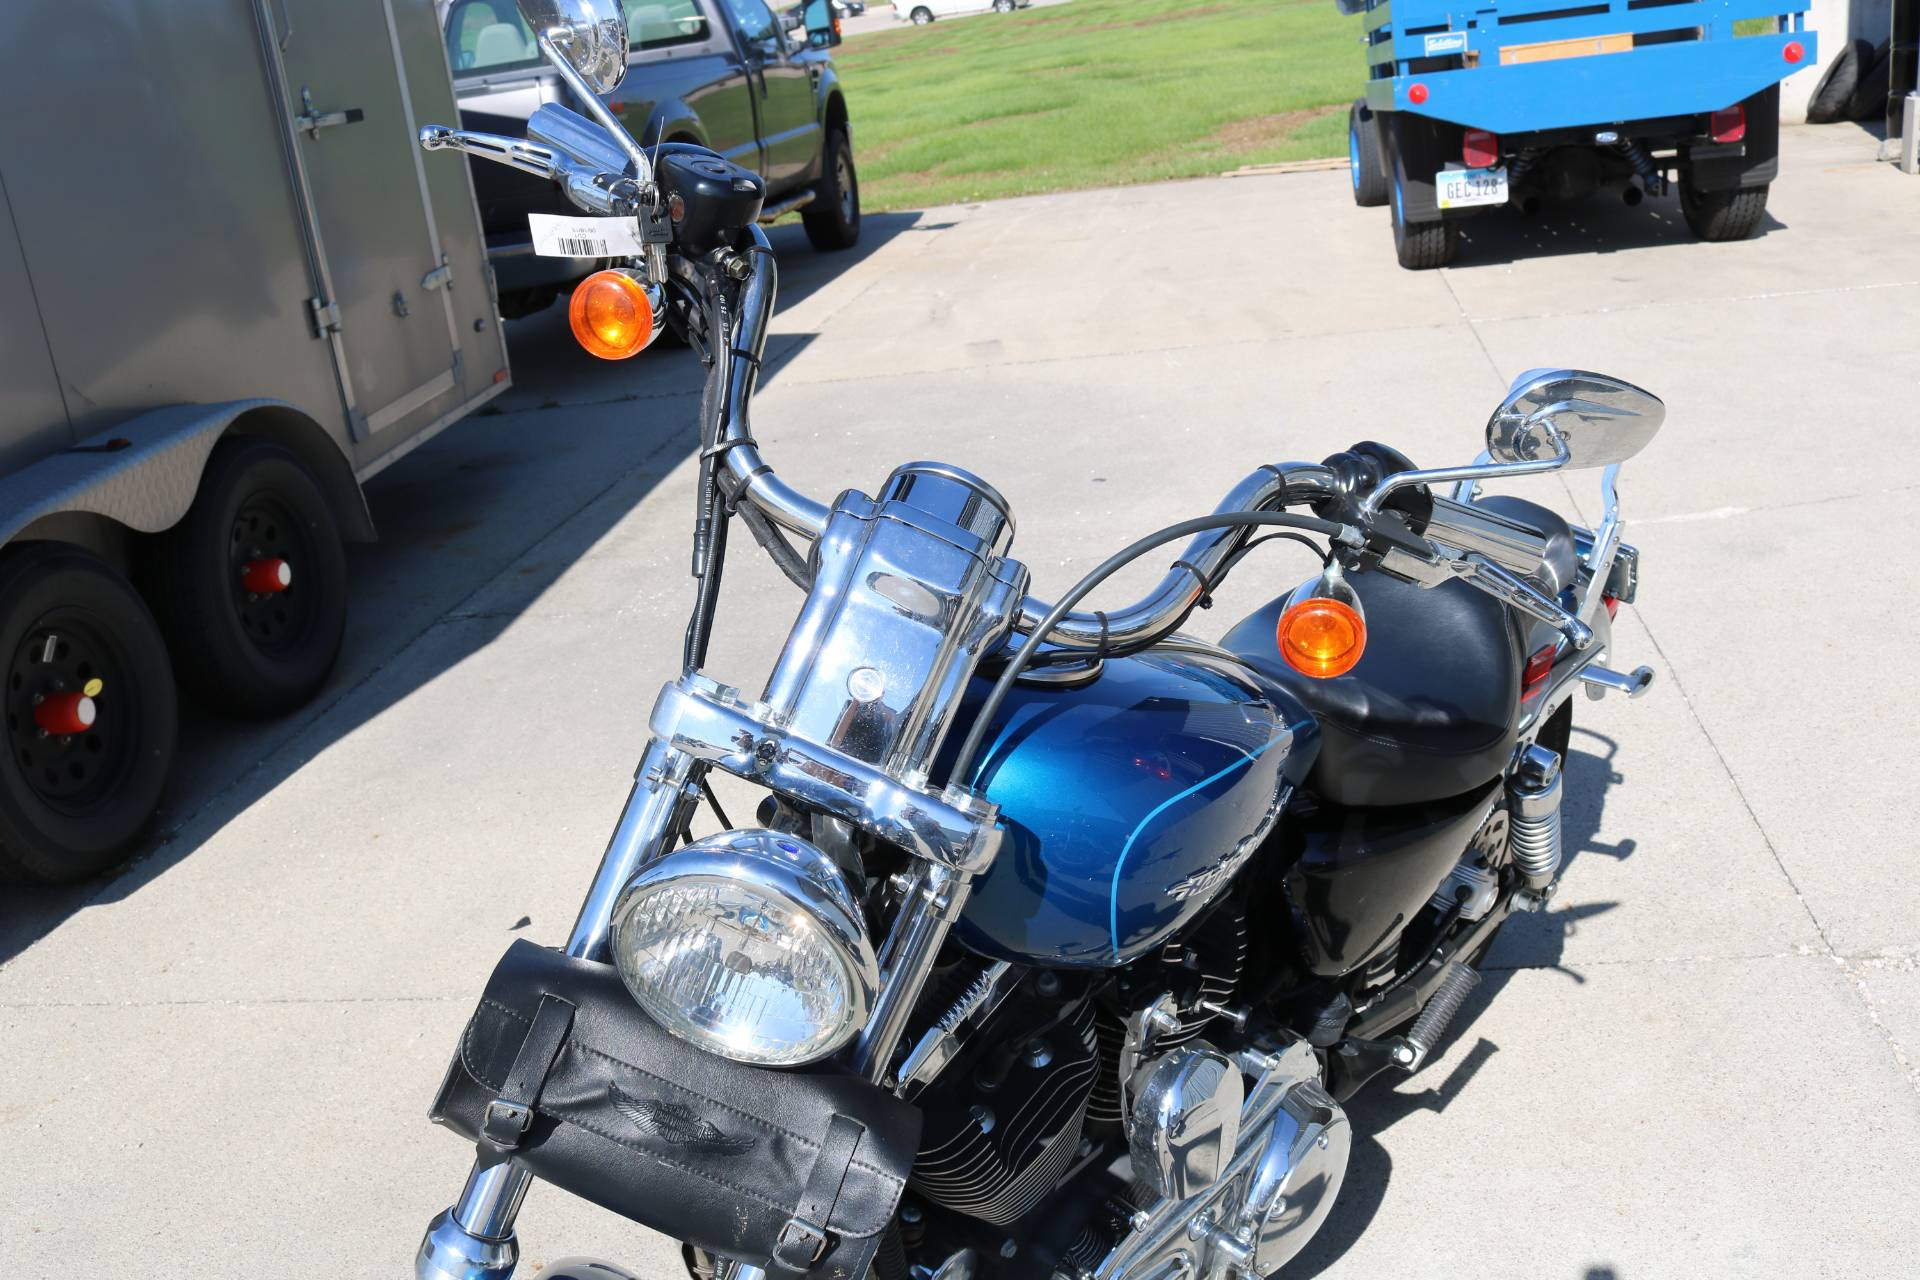 2005 Harley-Davidson Sportster® XL 1200 Custom in Carroll, Iowa - Photo 4